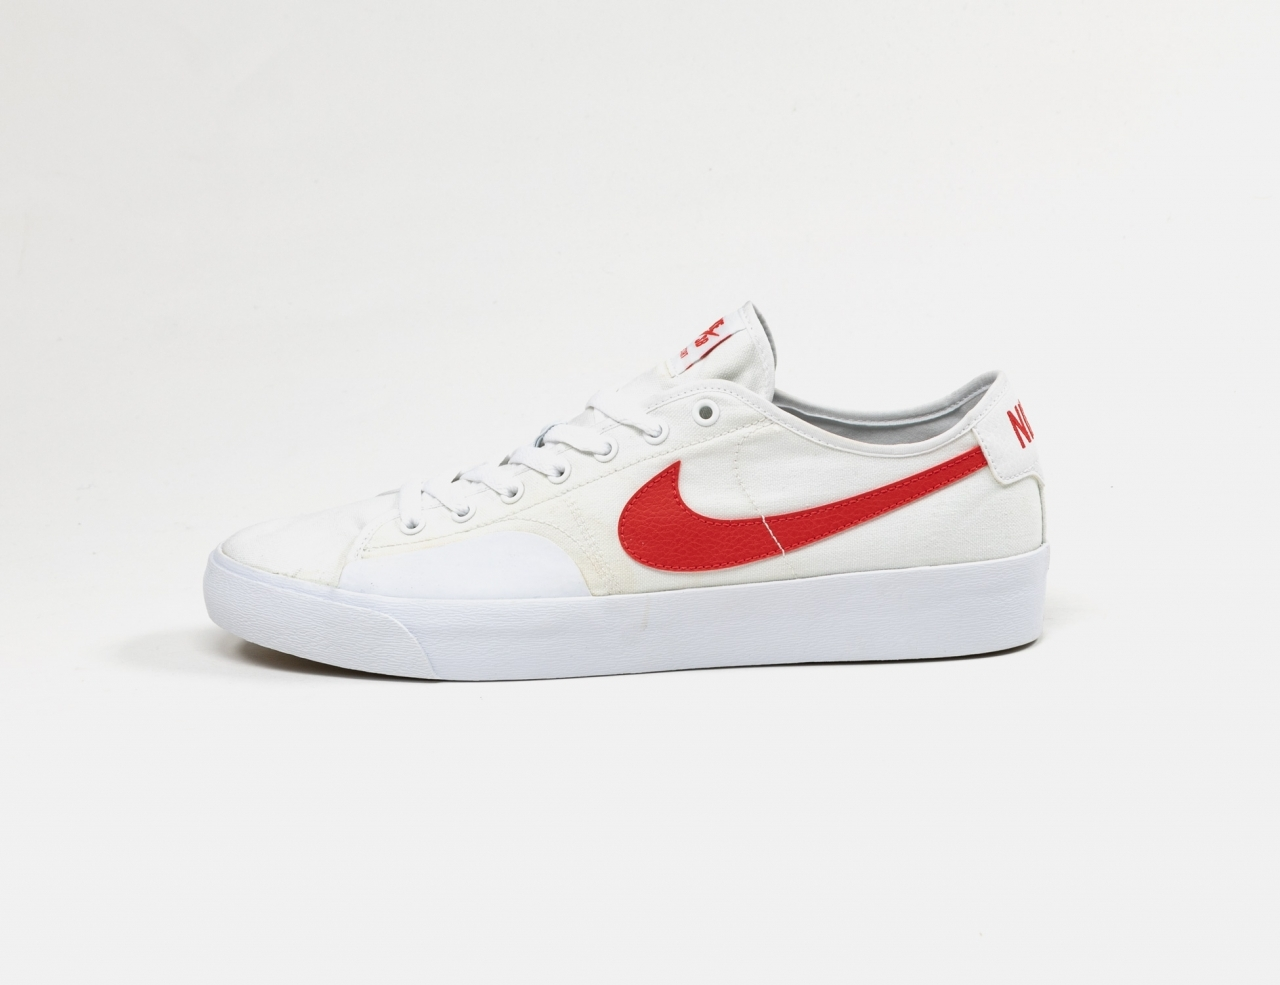 Nike SB Blazer Court - White / University Red